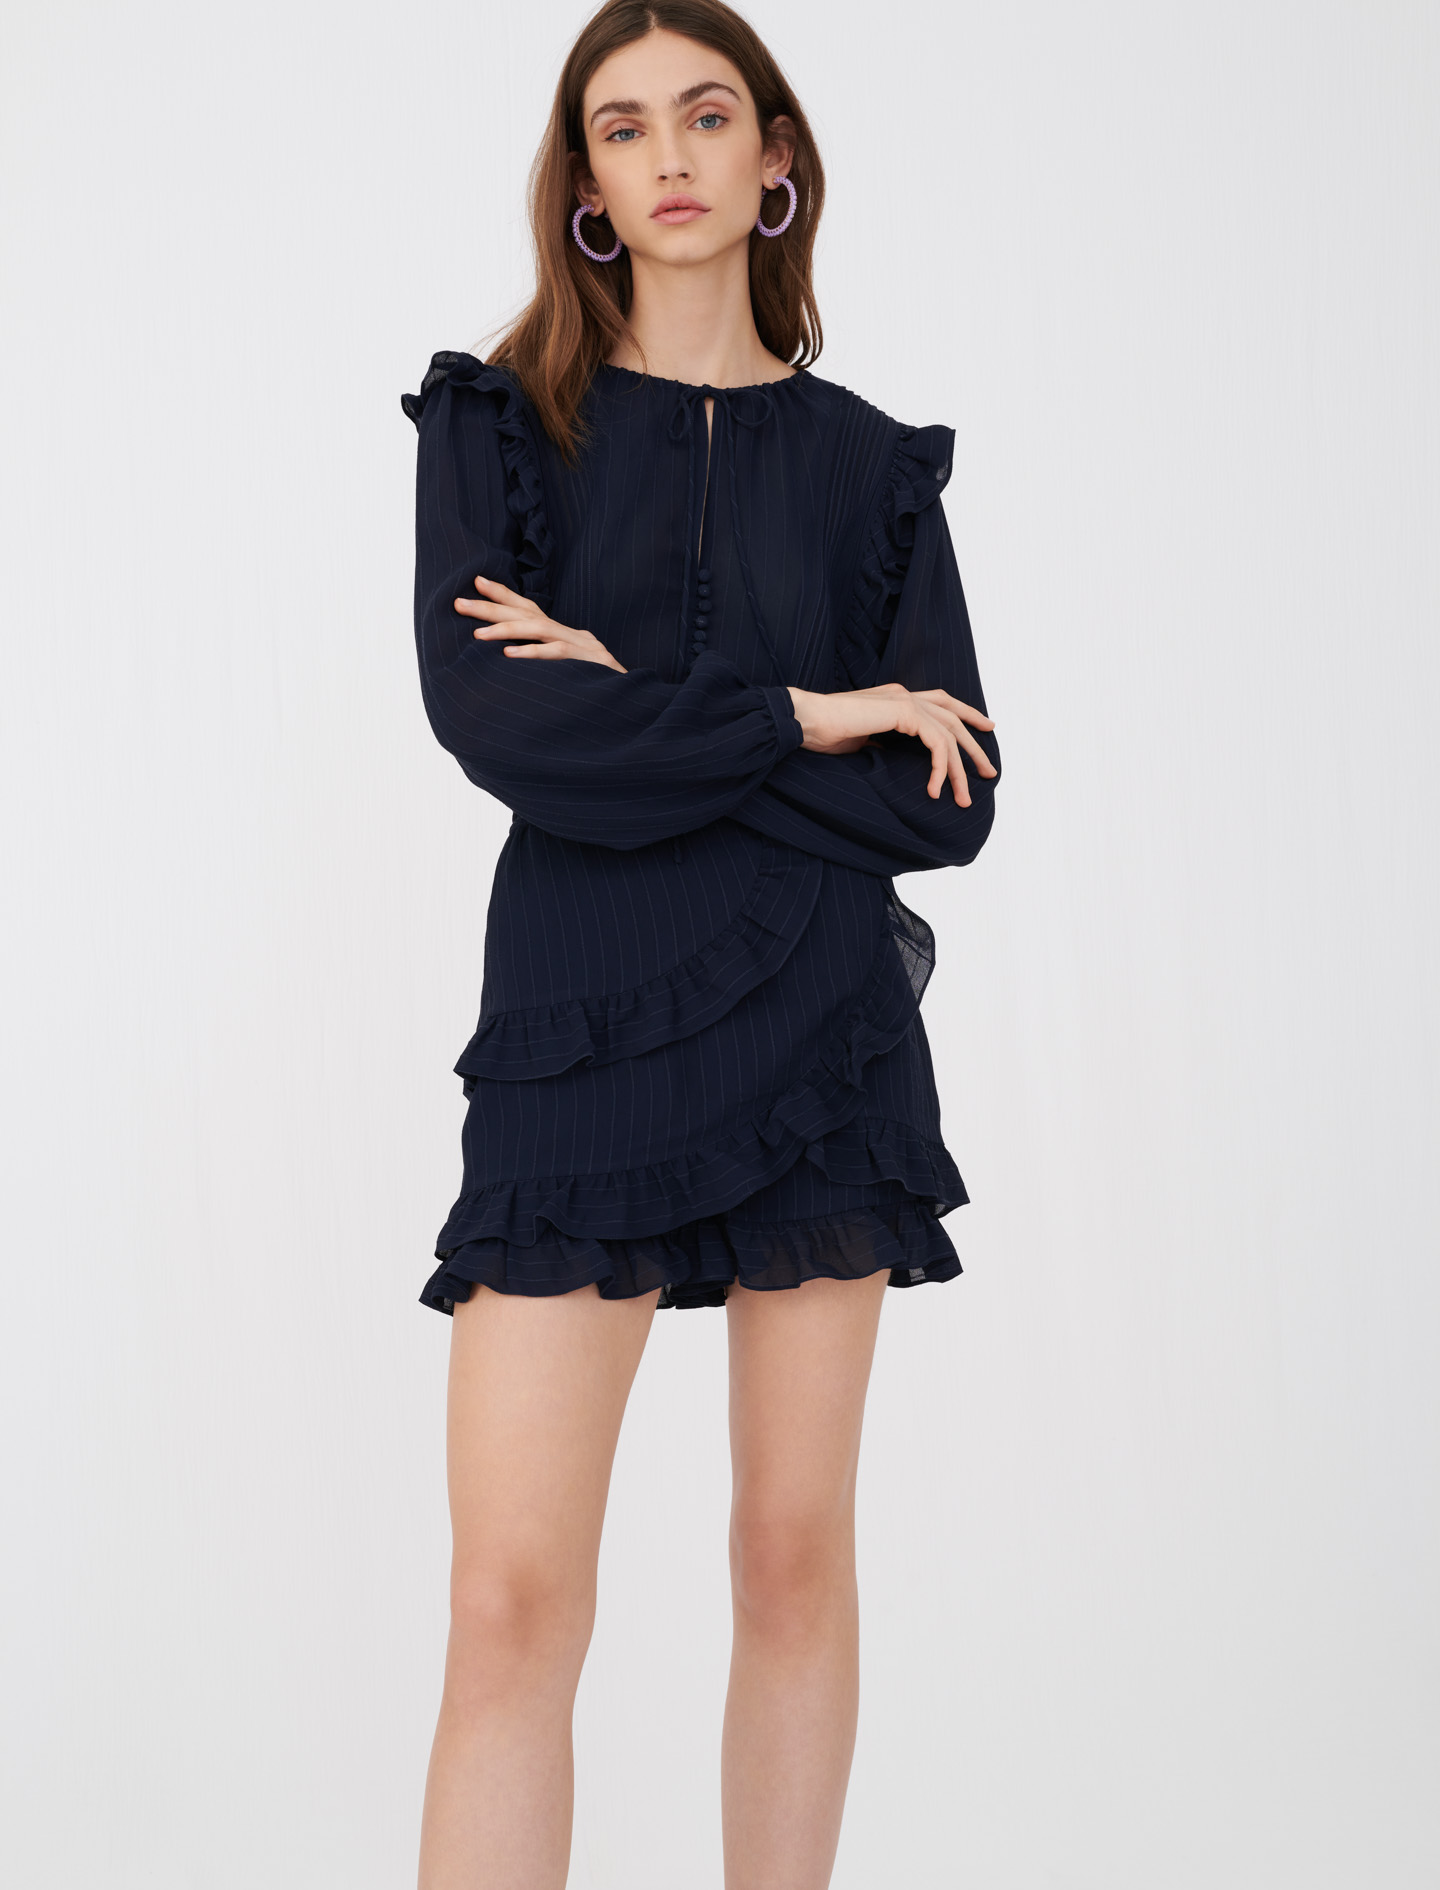 Playsuit with ruffles - Navy